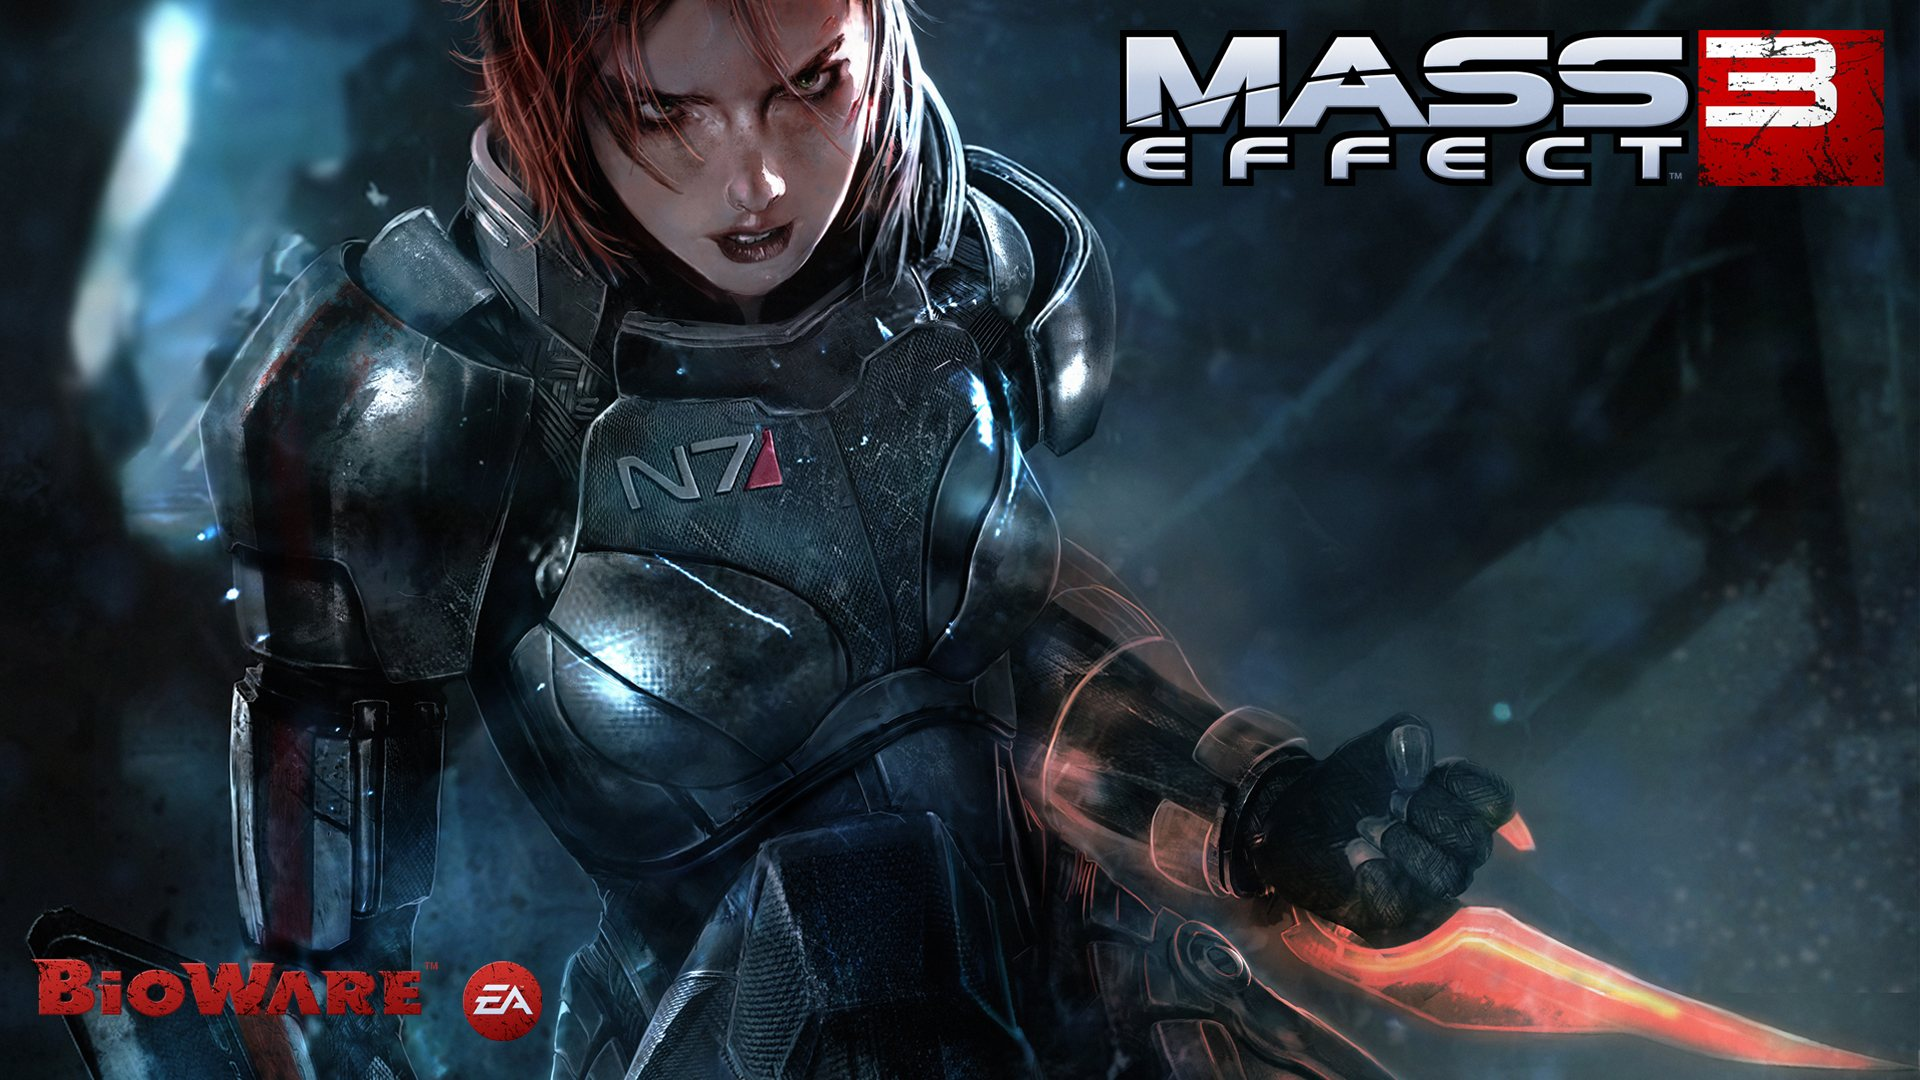 Mass Effect Follower is the newest part of the Follower Network (best known for Halo Follower). We really hope that you guys are just as excited about this ...